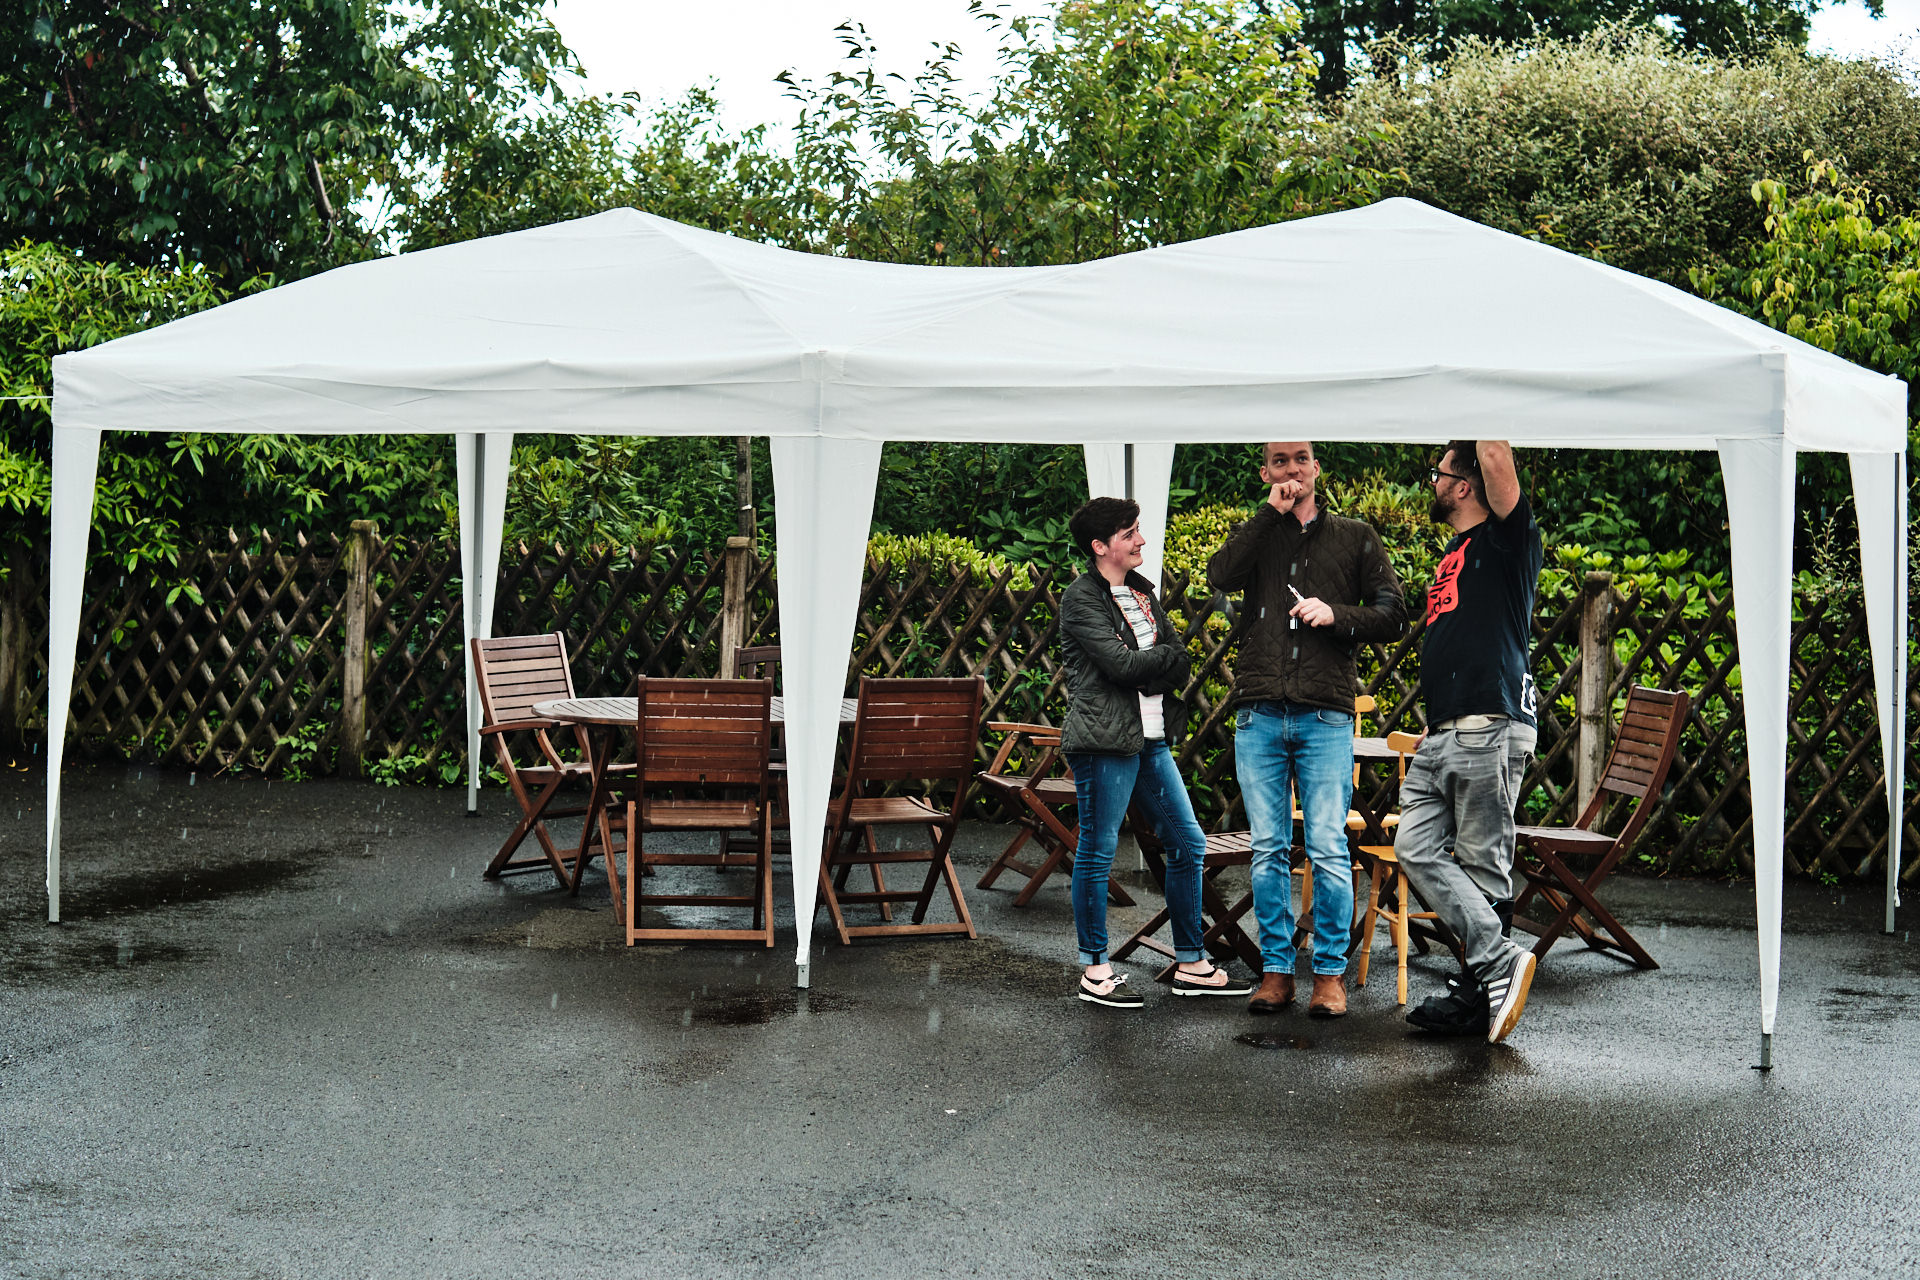 colour photograph of the groom and wedding guests sheltering from the rain under a gazebo